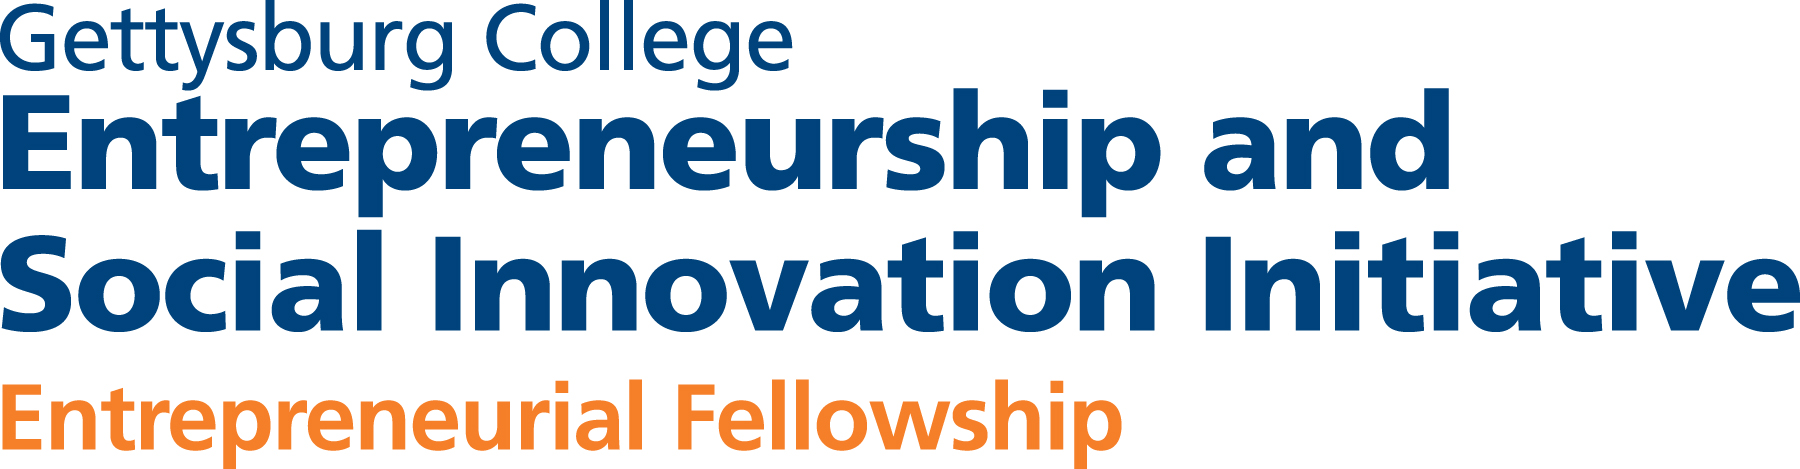 Gettysburg College Entrepreneurship and Social Innovation Initiative - Entrepreneurial Fellowship